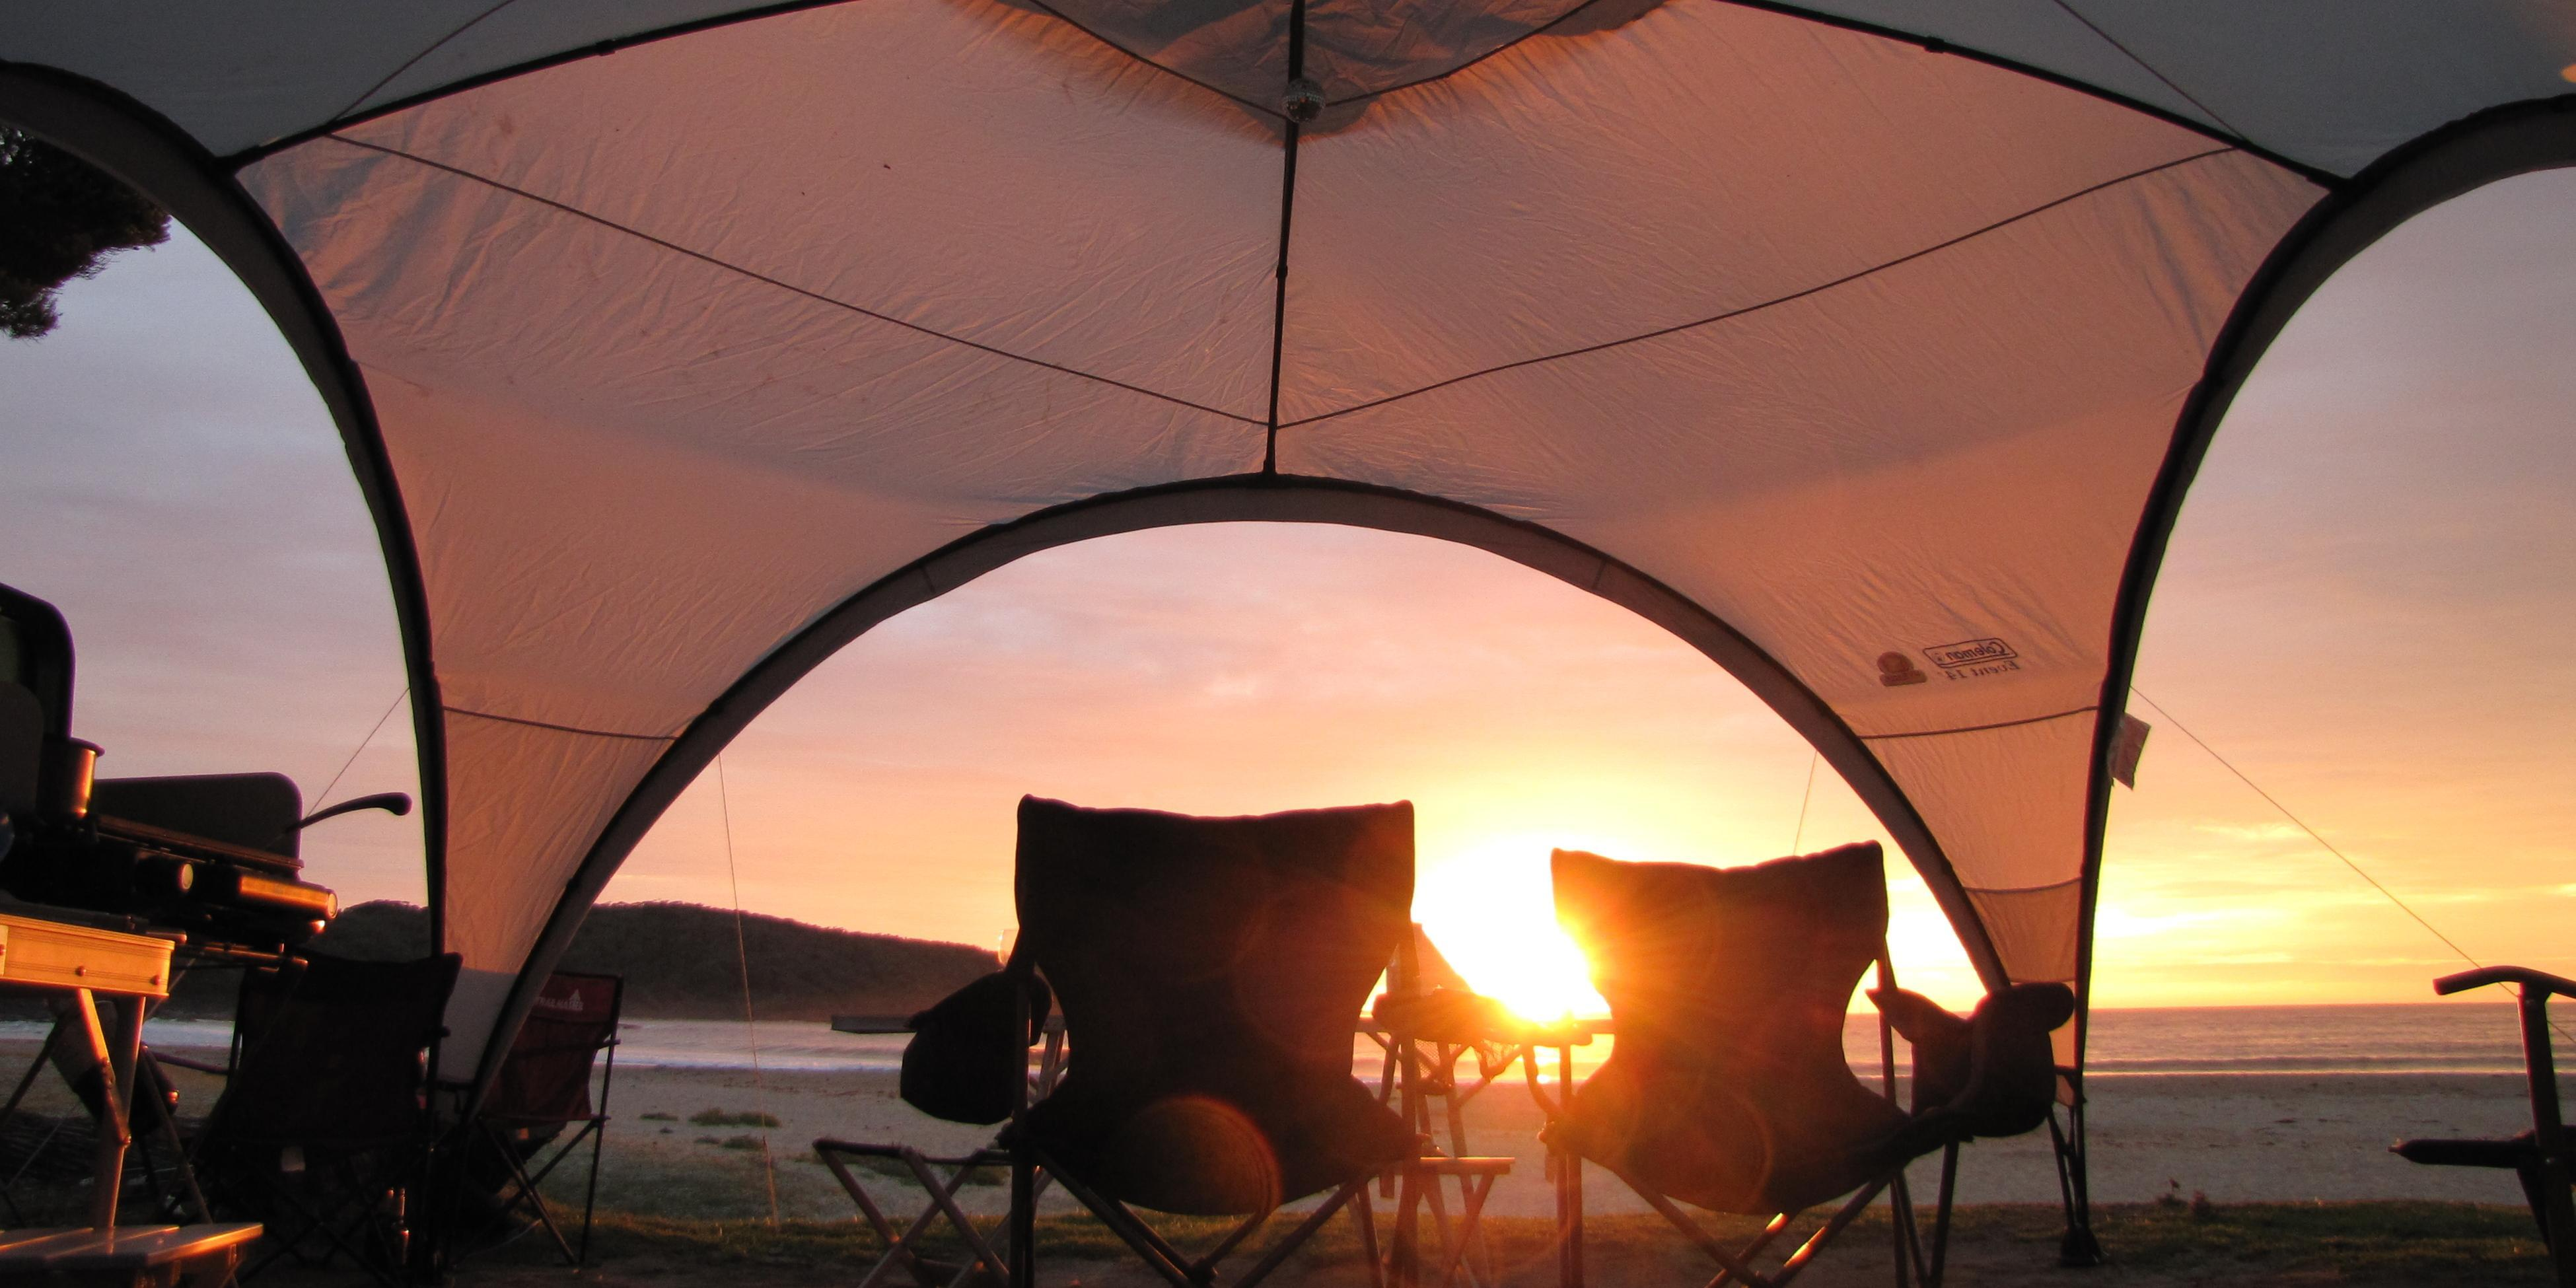 Tent outdoors at sunset